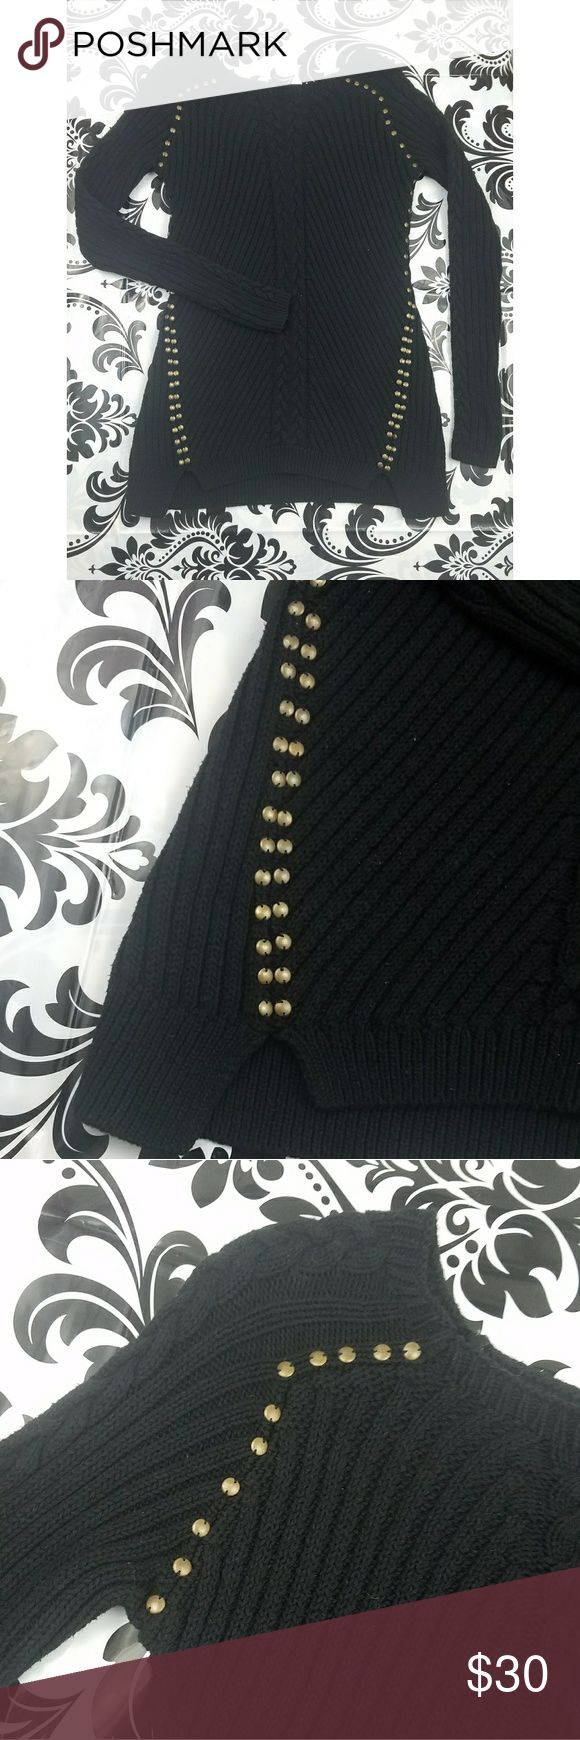 Philosophy studded sweater small Women's Size small philosophy brand studded sweater  Solid black chunky knit sweater with gold stud detail  Pre Owned good condition  100% cotton Philosophy Sweaters